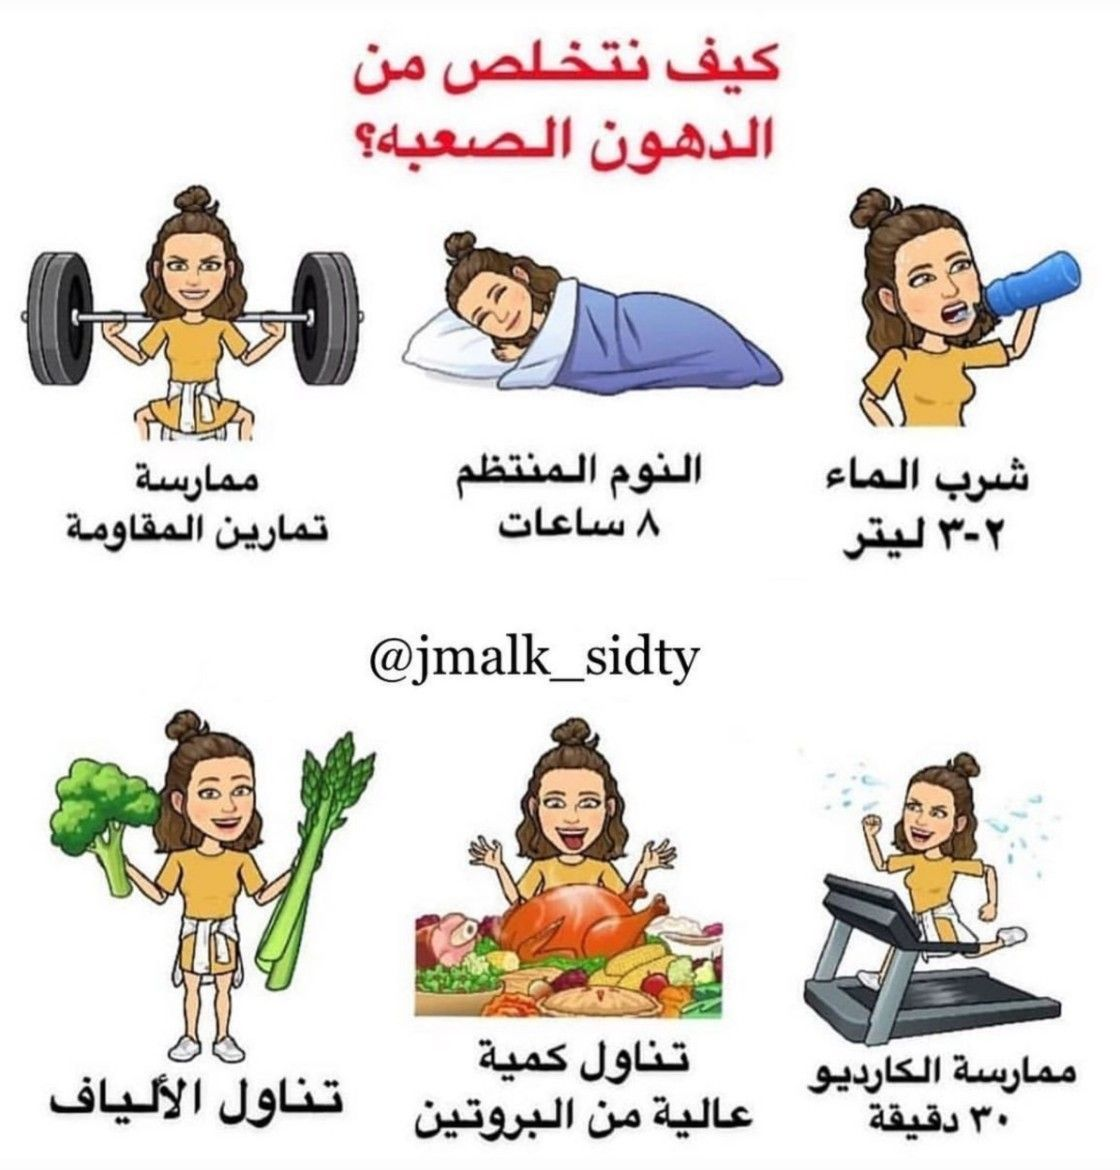 Pin By Amani On معلومات صحية Gym Workout For Beginners Fitness Healthy Lifestyle Health And Fitness Expo